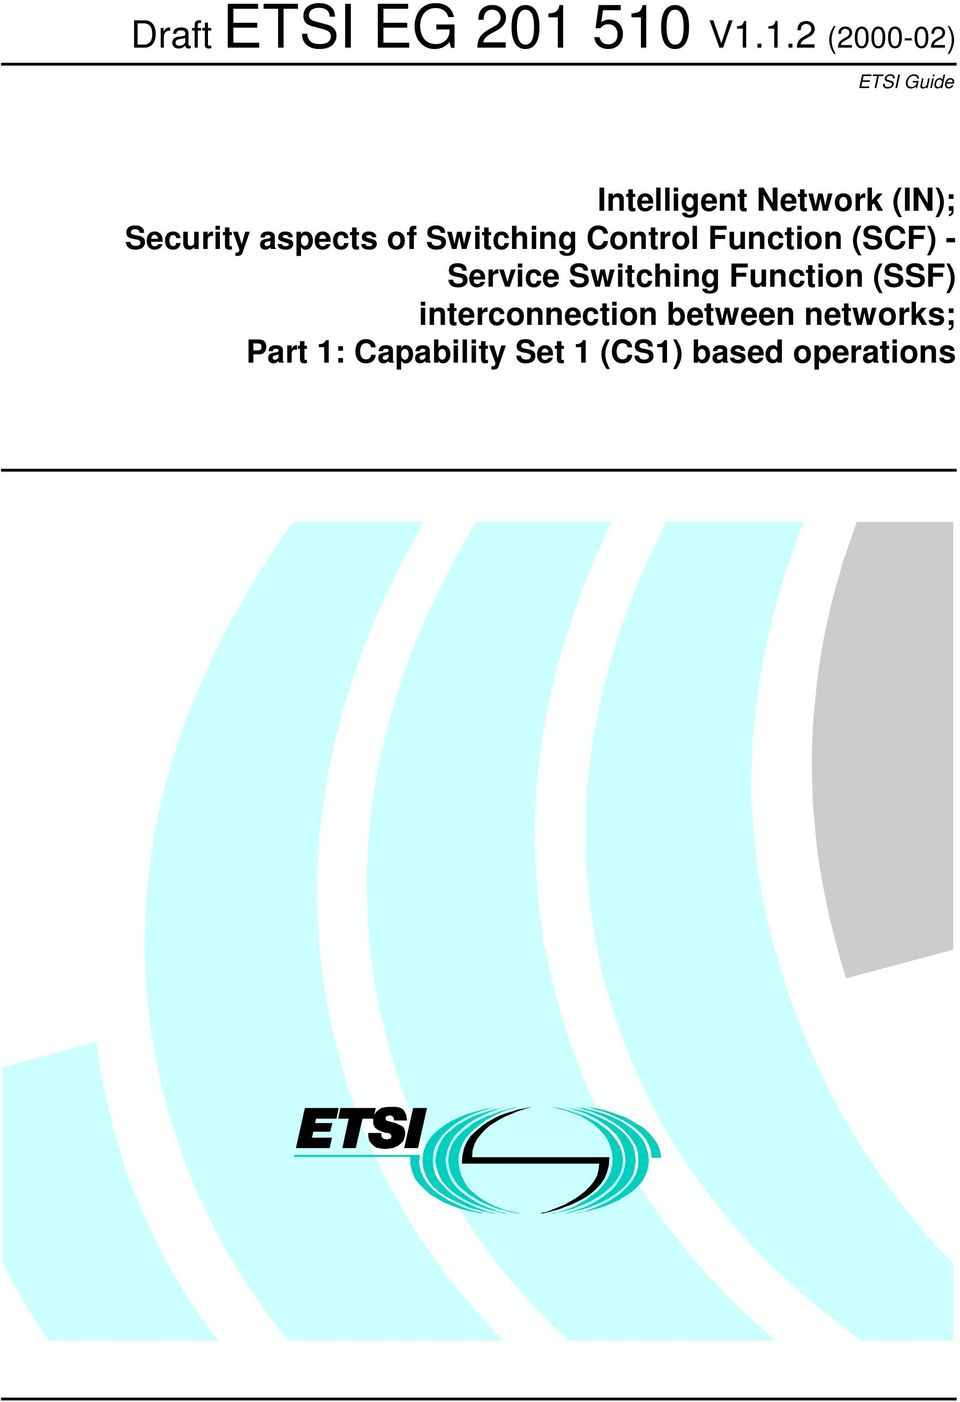 Security aspects of Switching Control Function (SCF) -